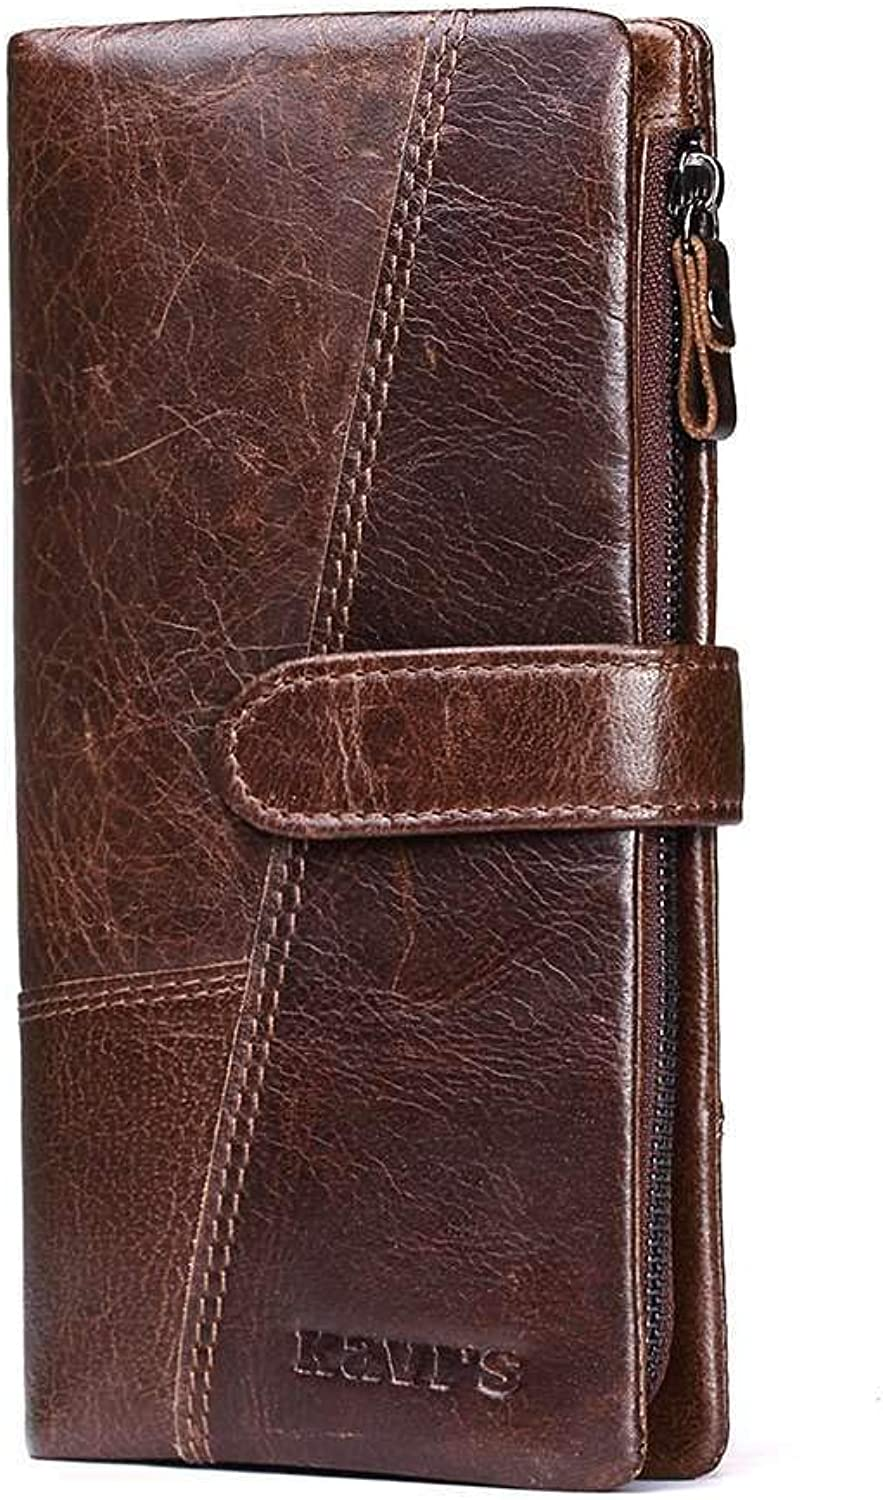 Fashion Ladies Leather Wallet, RFIDBlocking Soft Leather Long Wallet, Multiple Credit Card Slots and Coin Purses